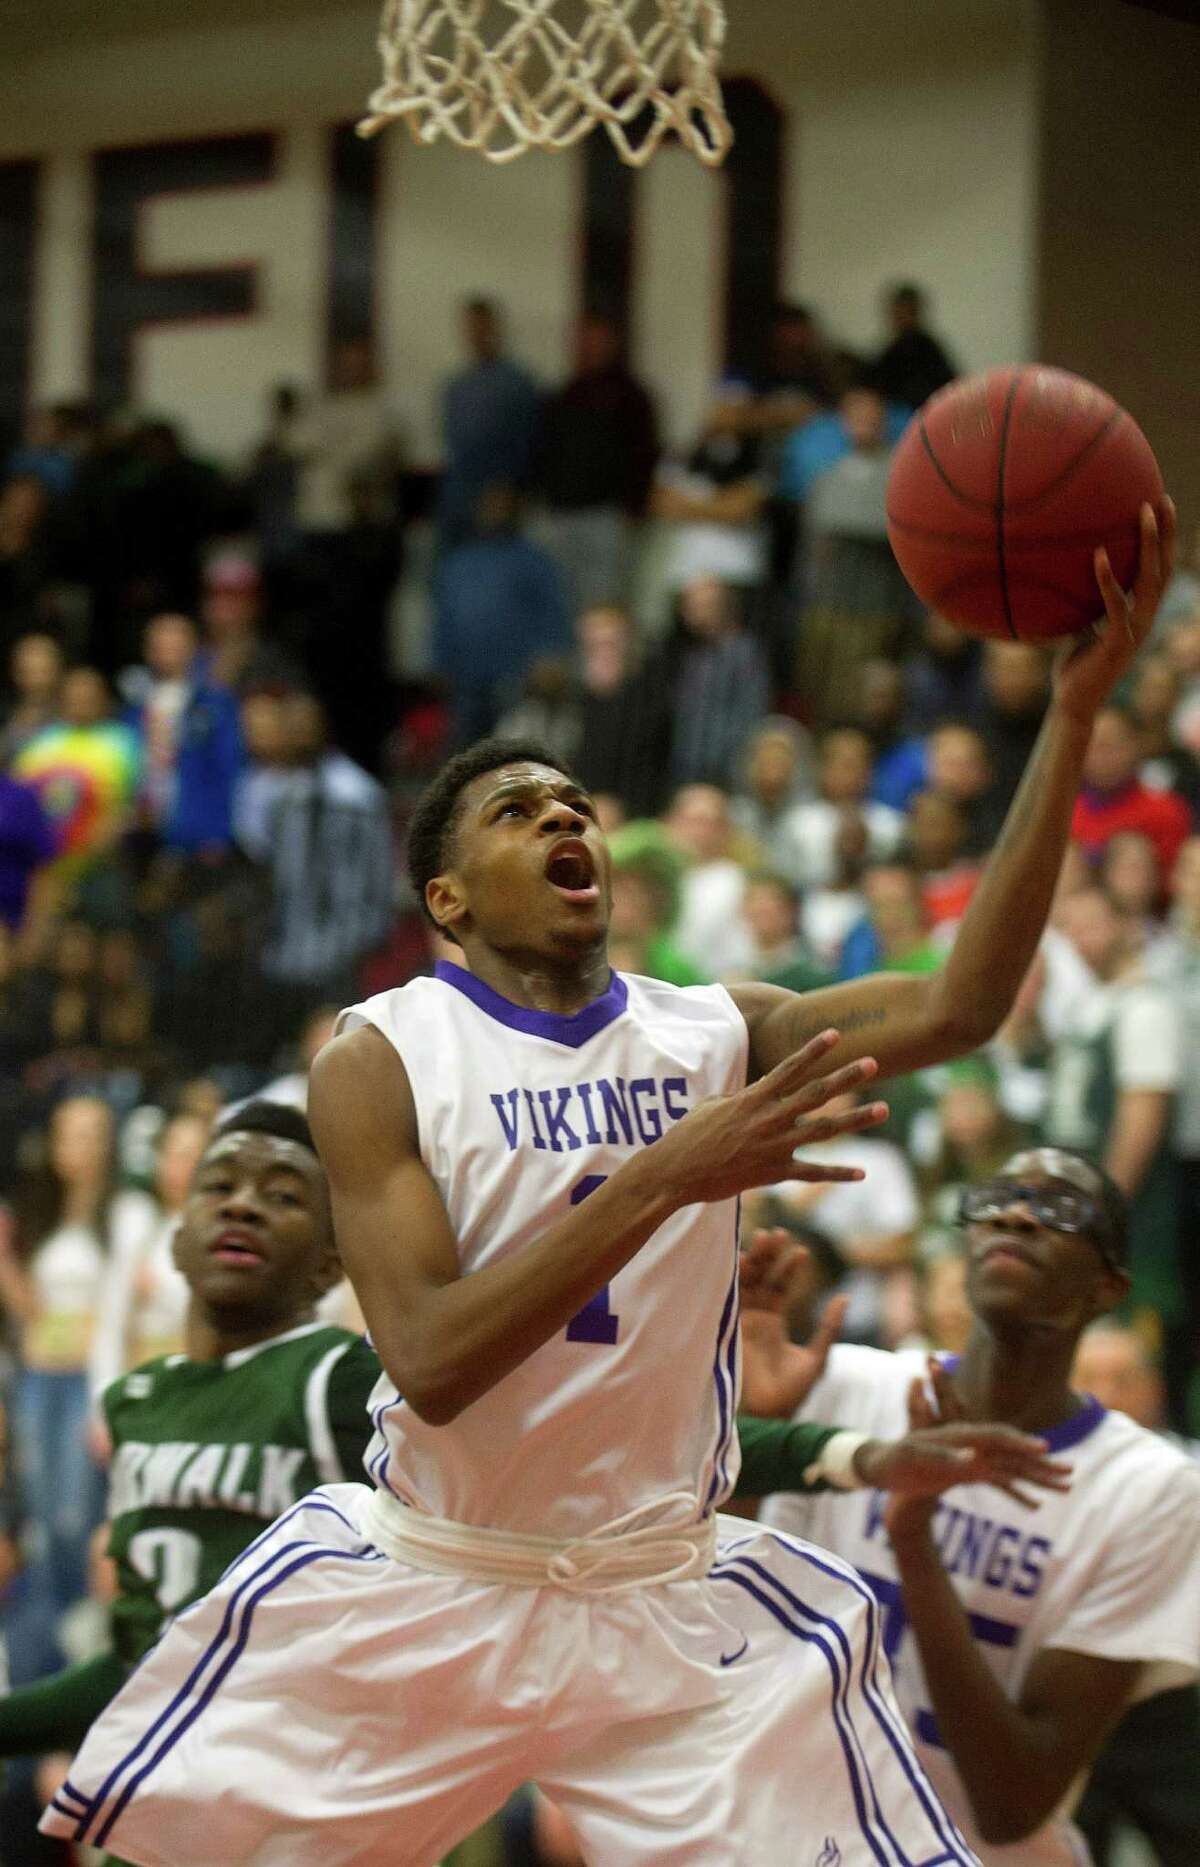 Westhill's Jeremiah Livingston takes a shot during the FCIAC Boys Basketball Championship game between Westhill and Norwalk High Schools at Fairfield Warde High School in Fairfield, Conn., on Friday, March 6, 2015.